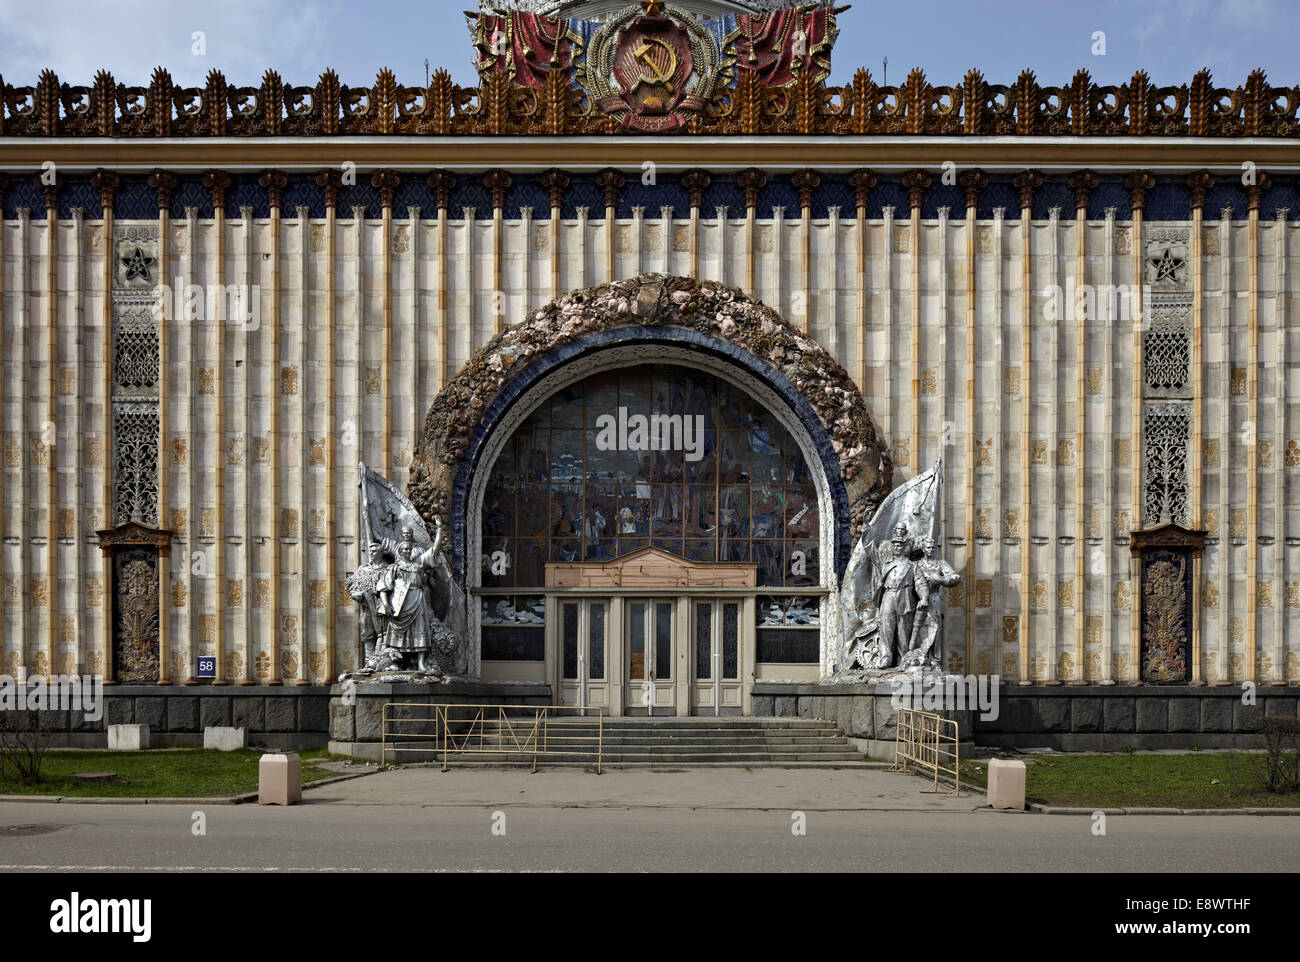 Arched entrance doorway Pavilion of the Ukraine All Russia Exhibition Centre, Moscow, Russia. - Stock Image